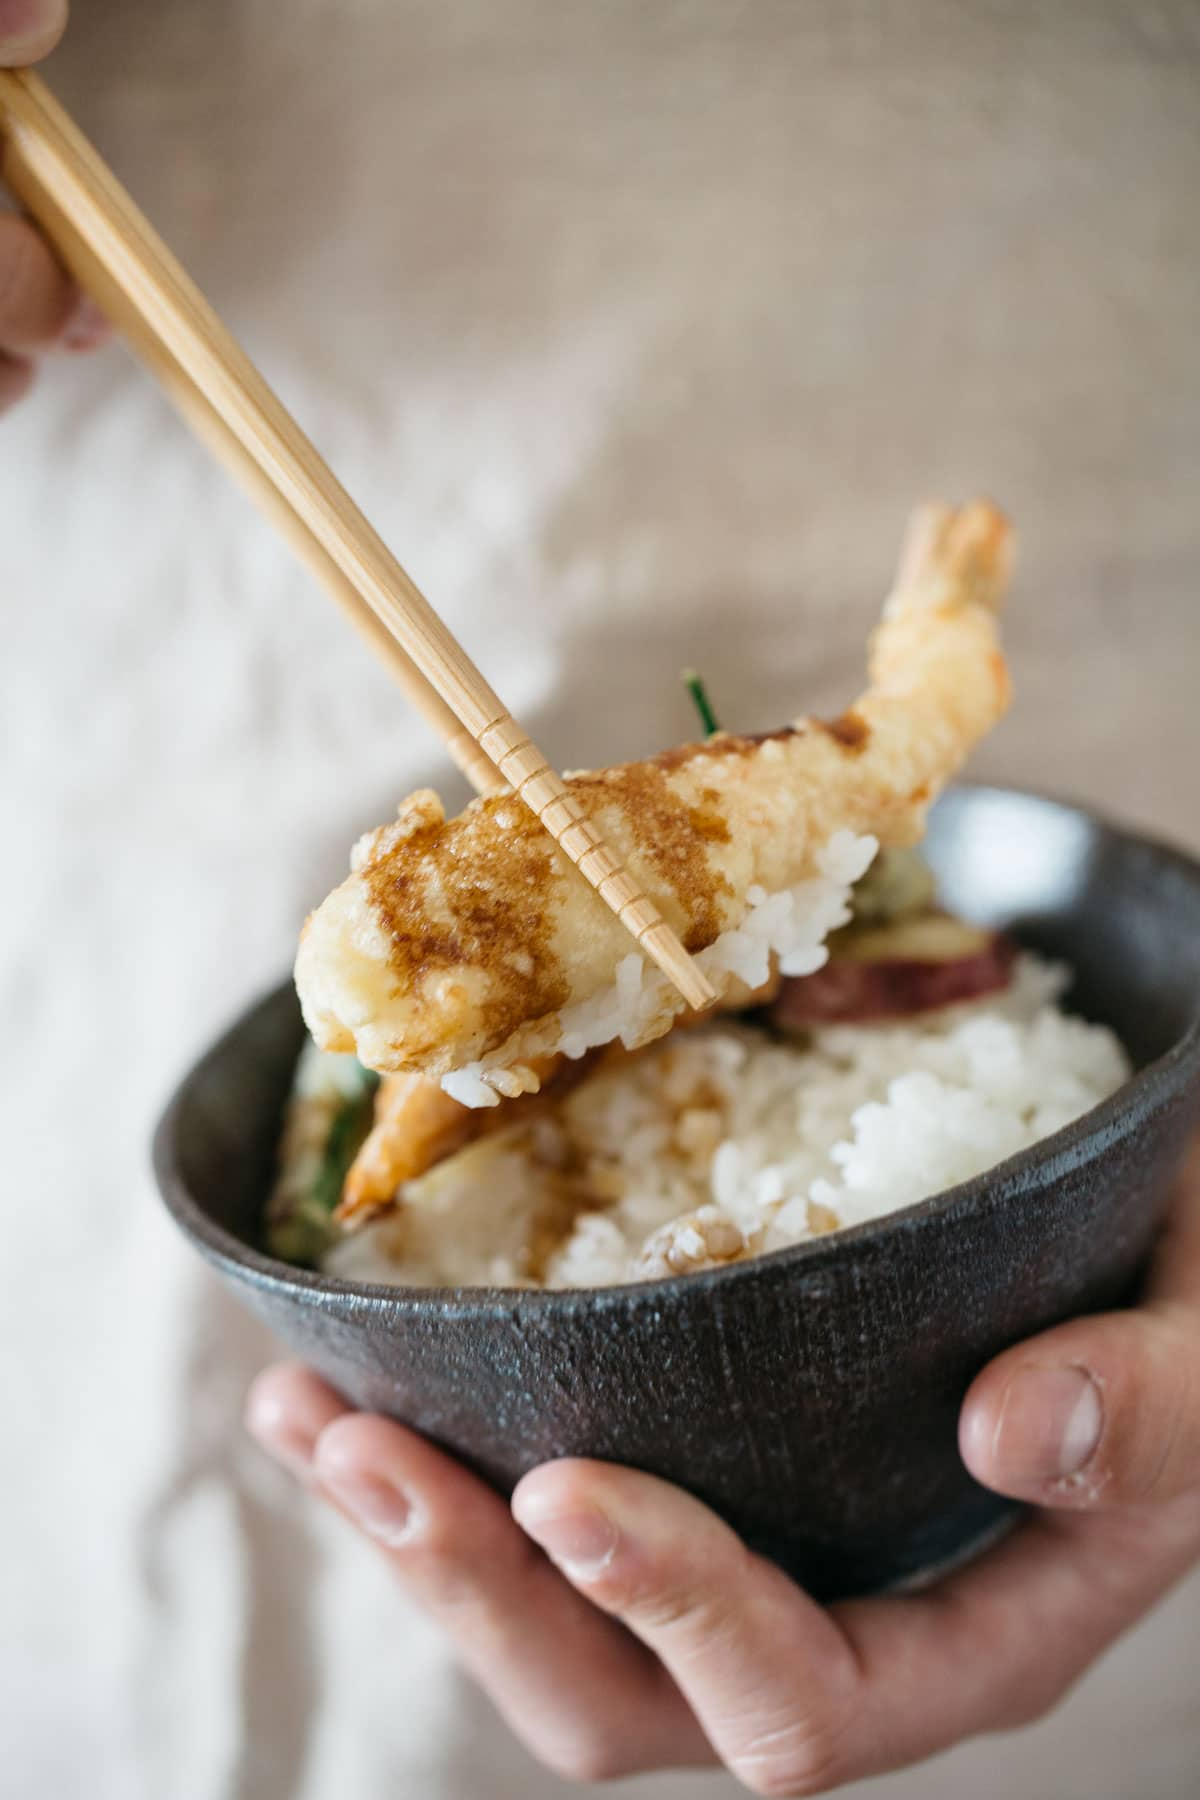 A prawn tempura picked up by a pair of chopstick